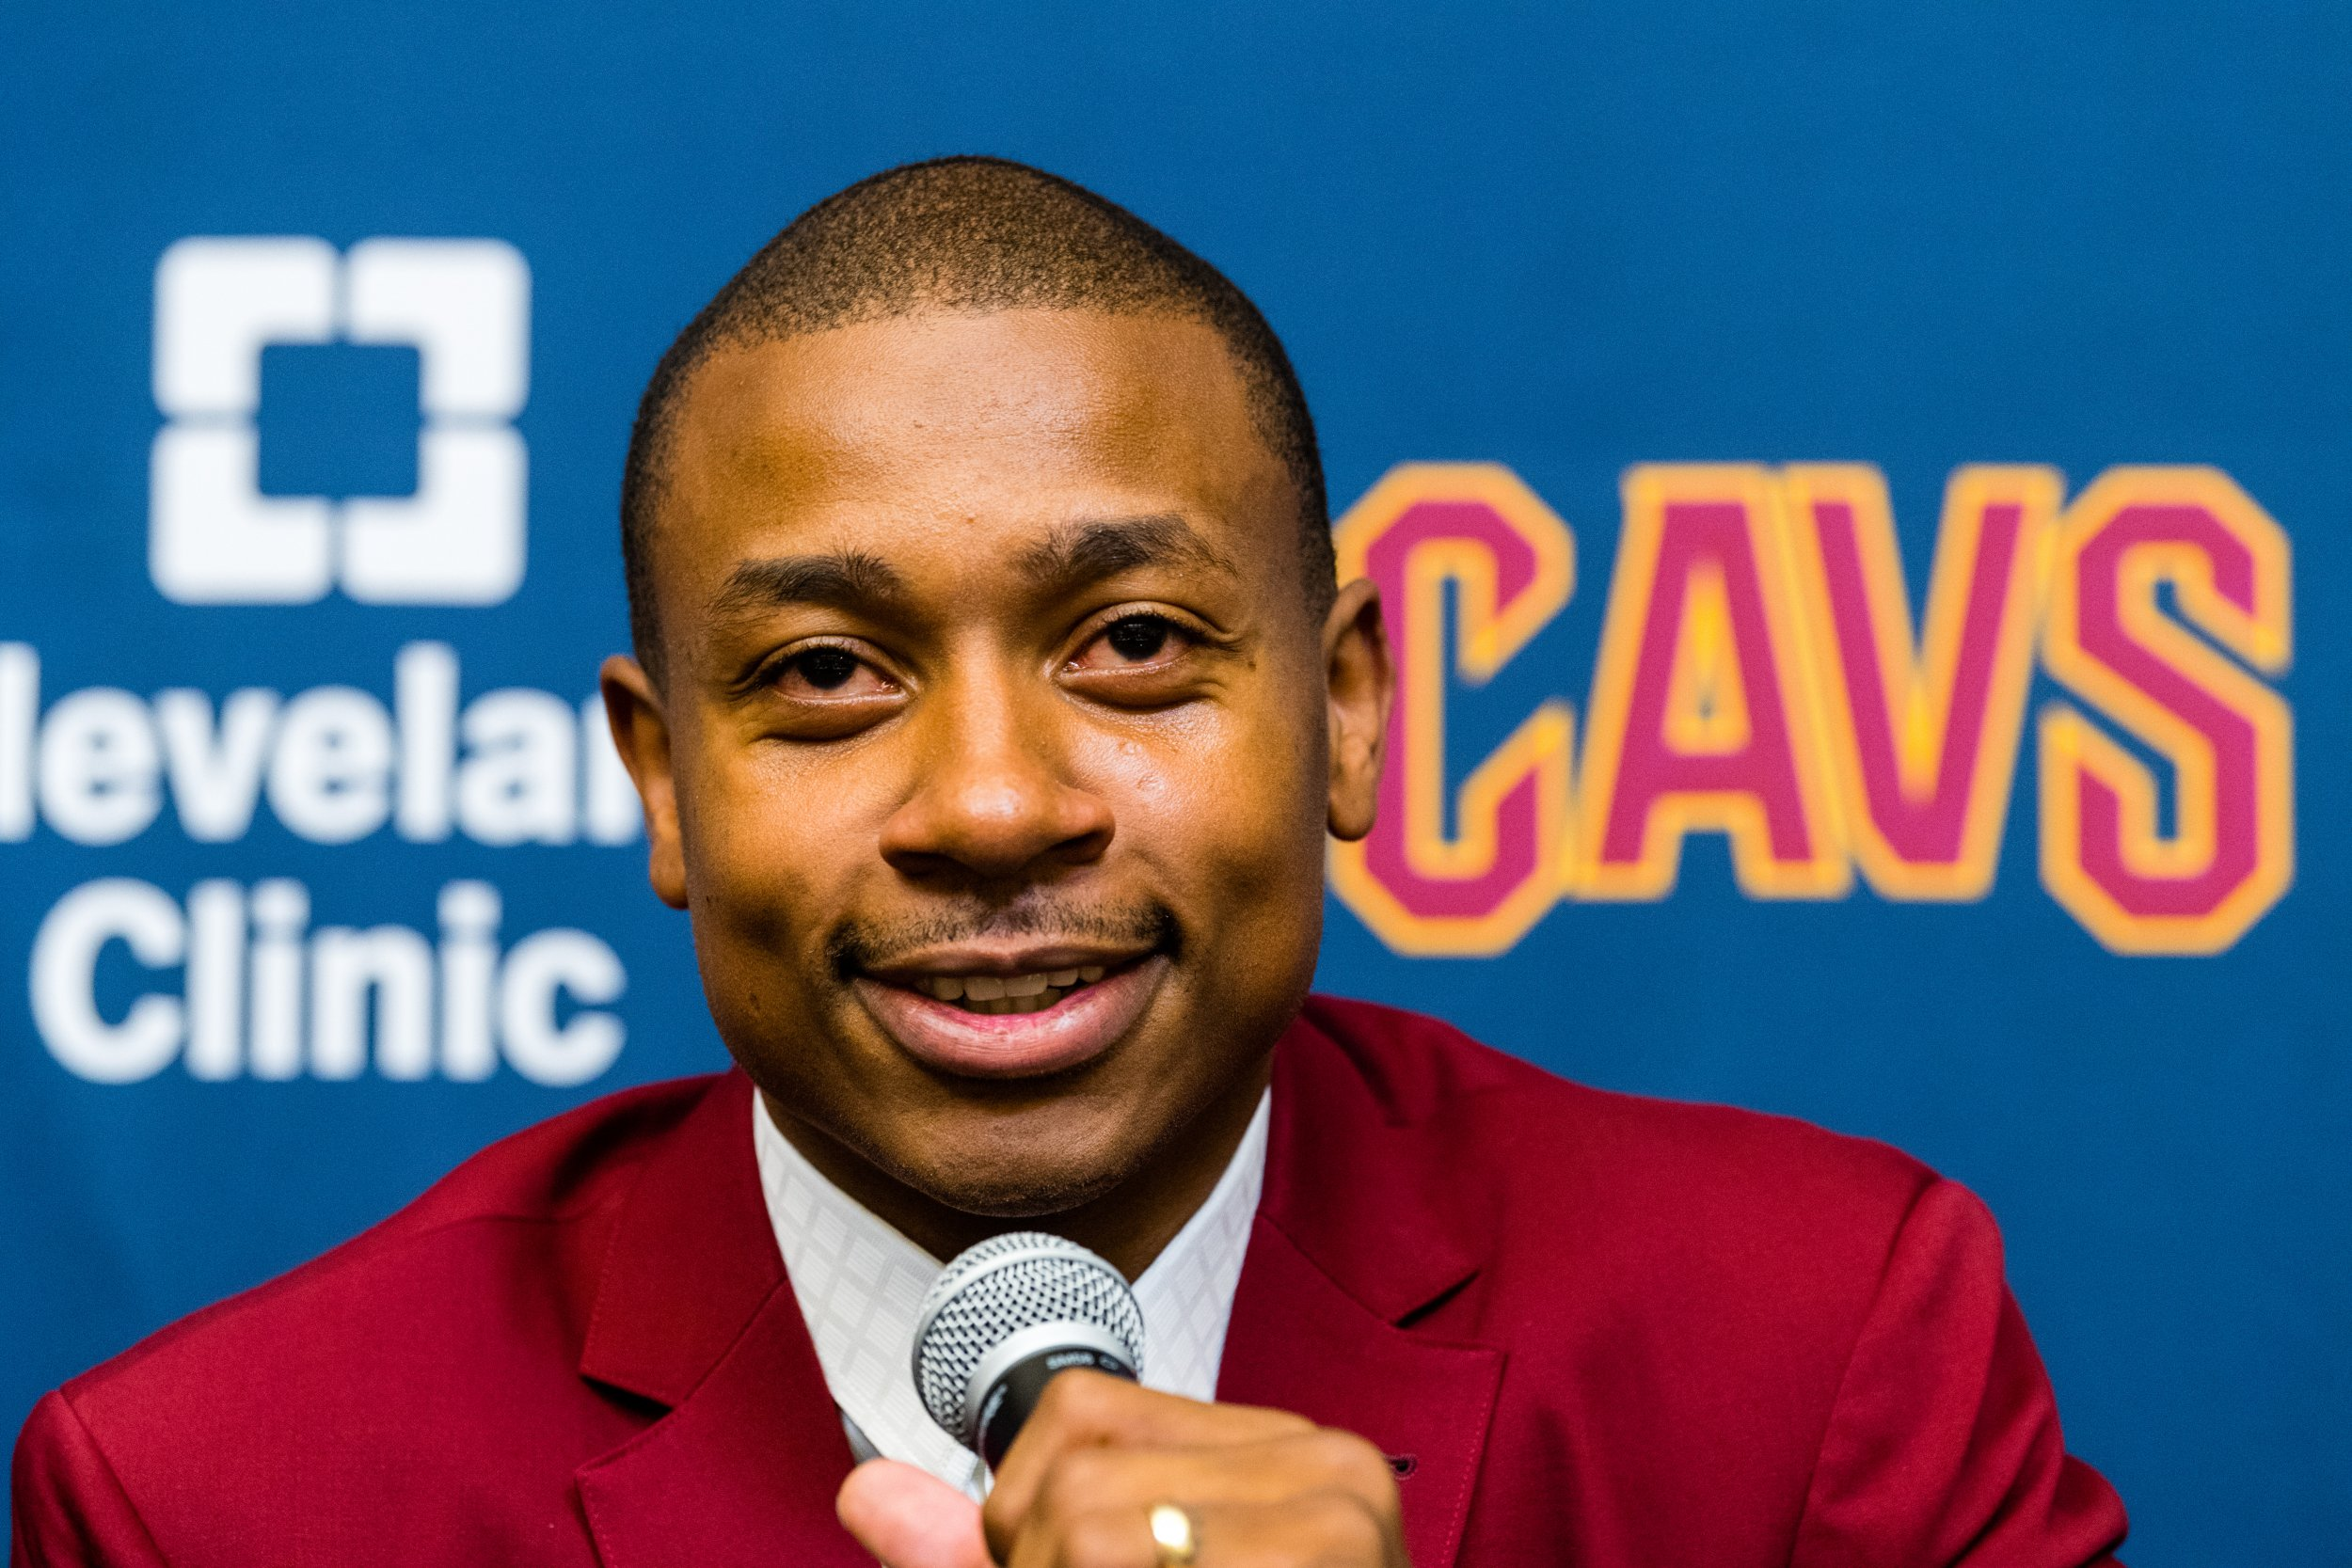 Cleveland Cavaliers point guard Isaiah Thomas.